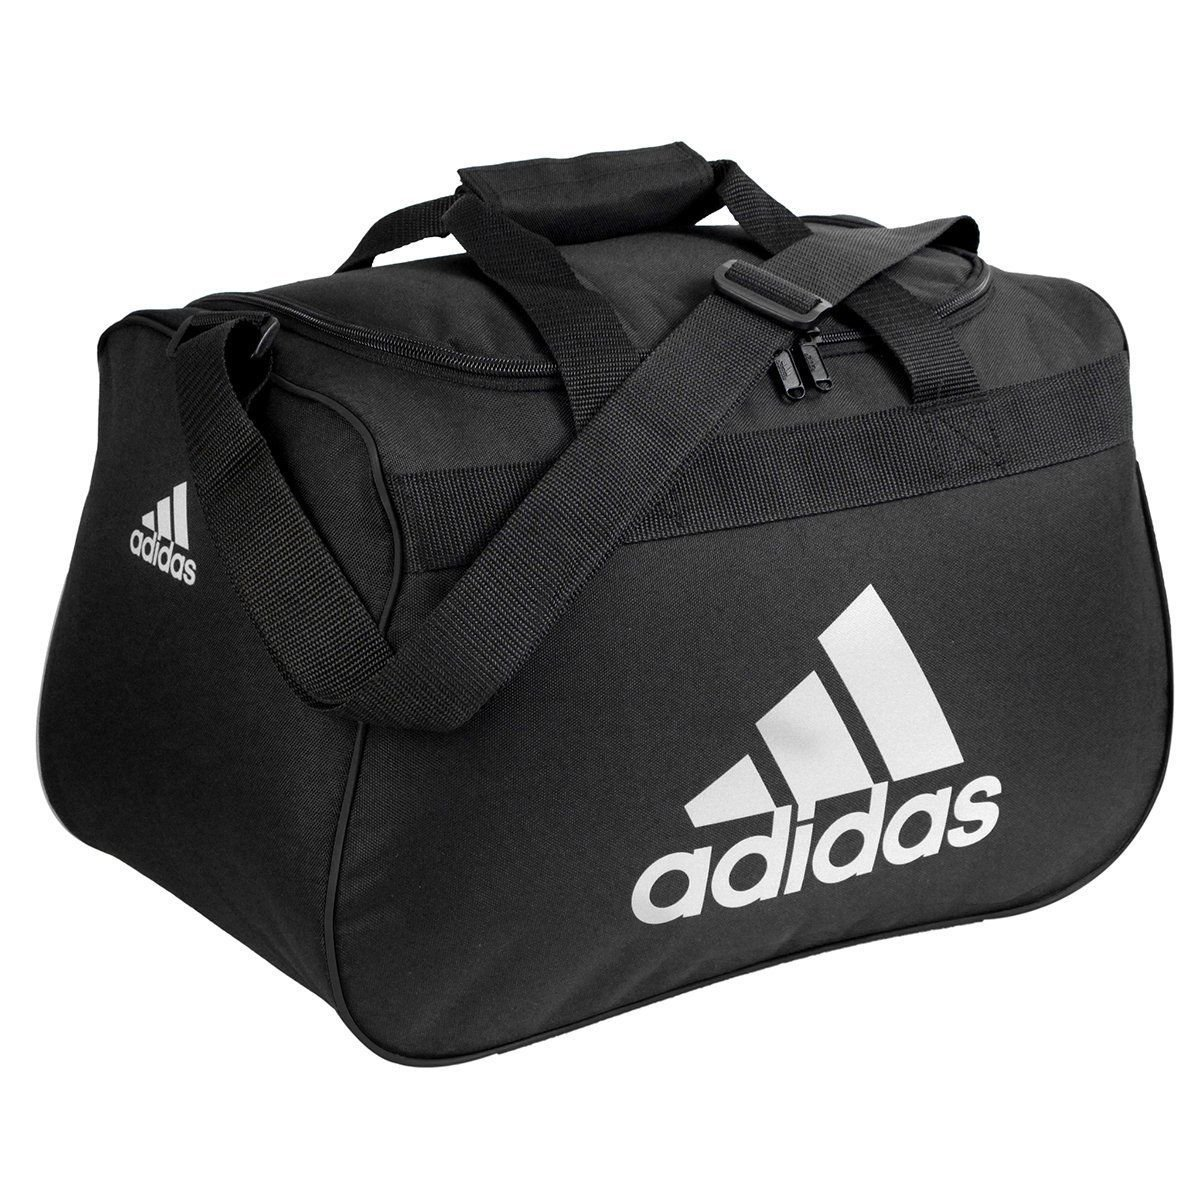 50acc4b6e8f8 Galleon - Adidas Diablo Small Duffel Bag - Black White